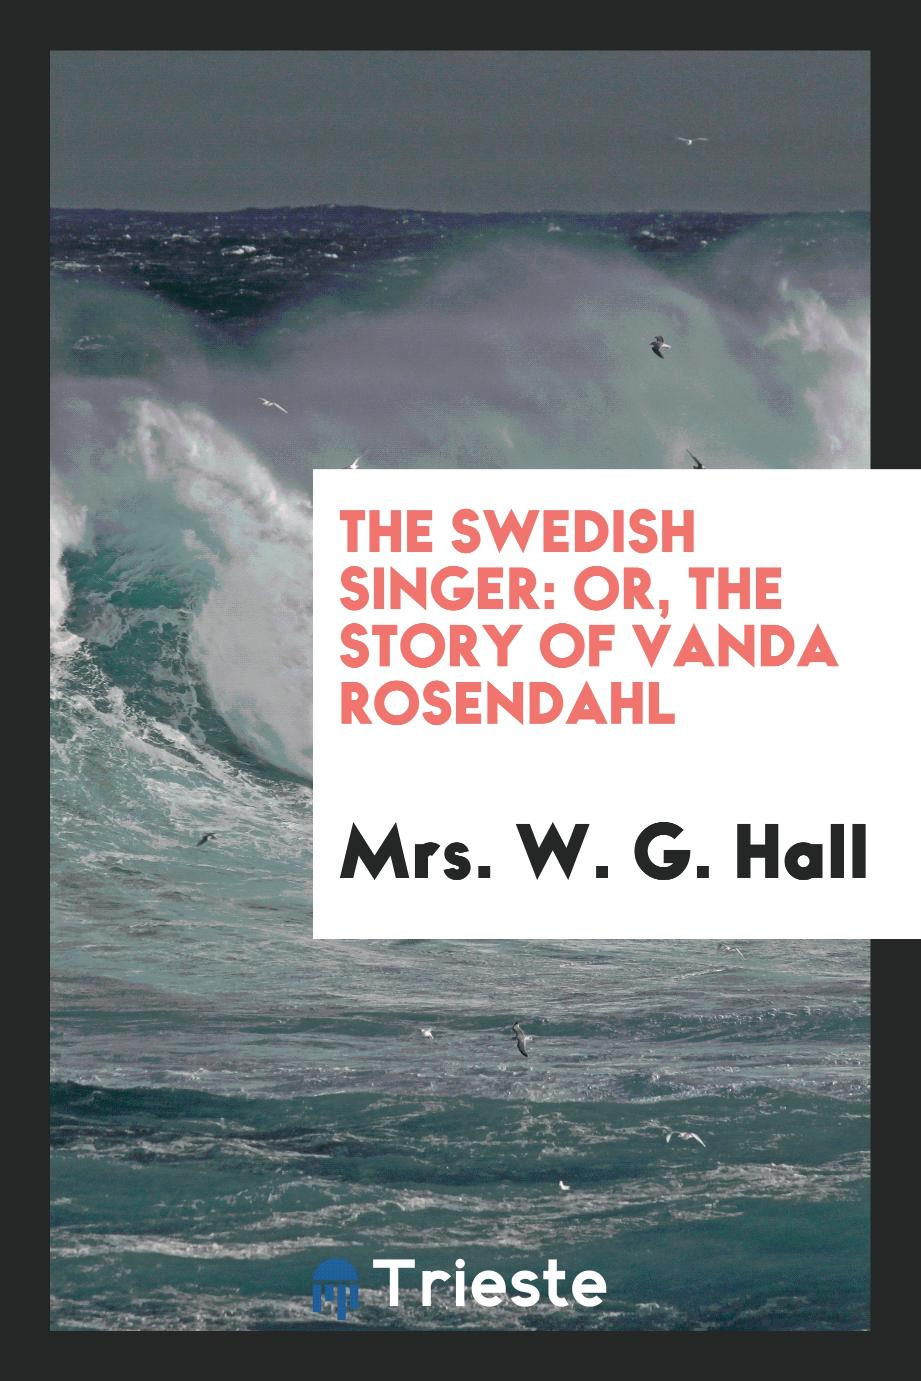 The Swedish Singer: Or, the Story of Vanda Rosendahl